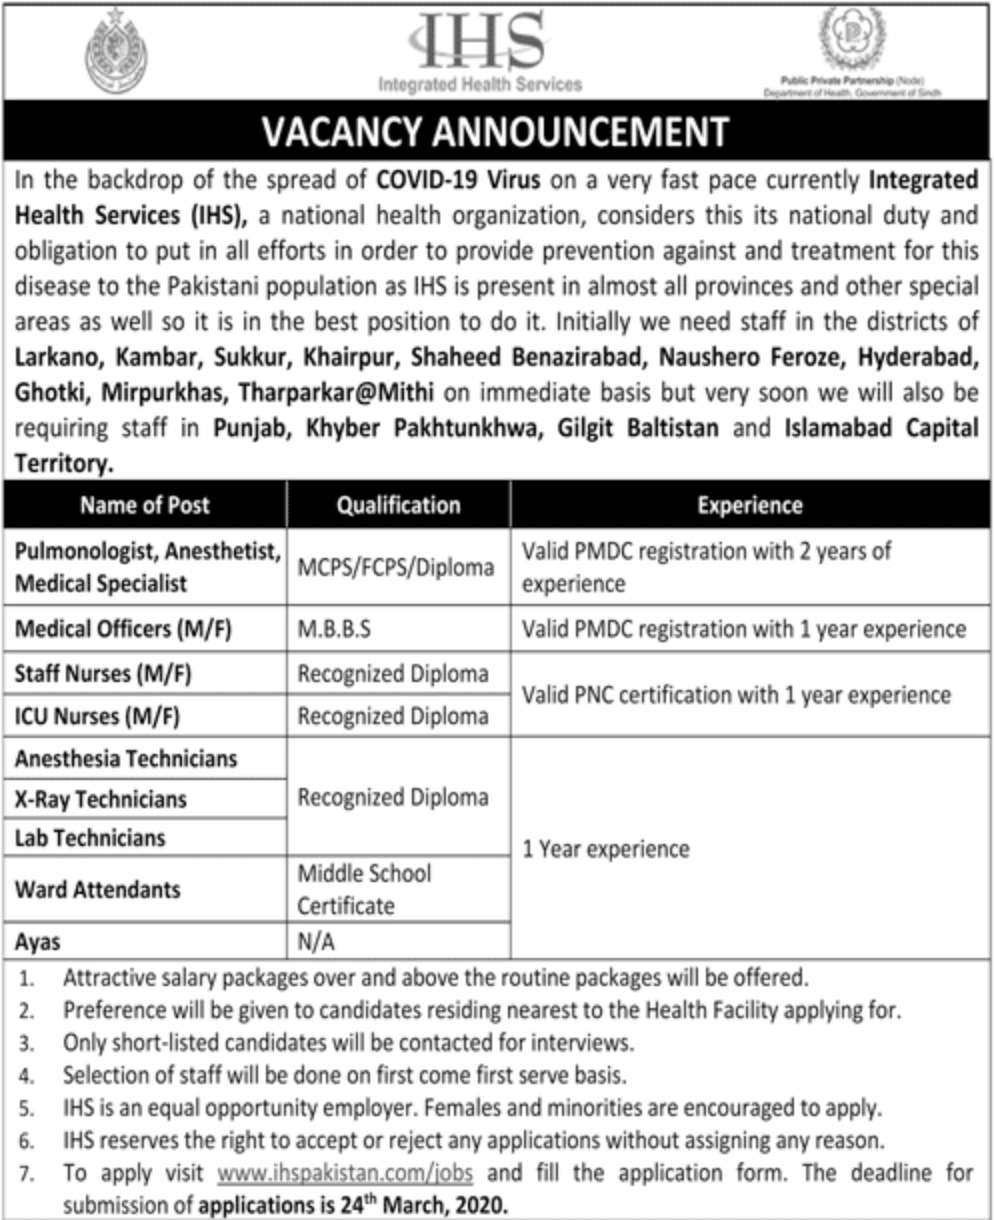 IHS Pakistan Jobs 2020 Integrated Health Services